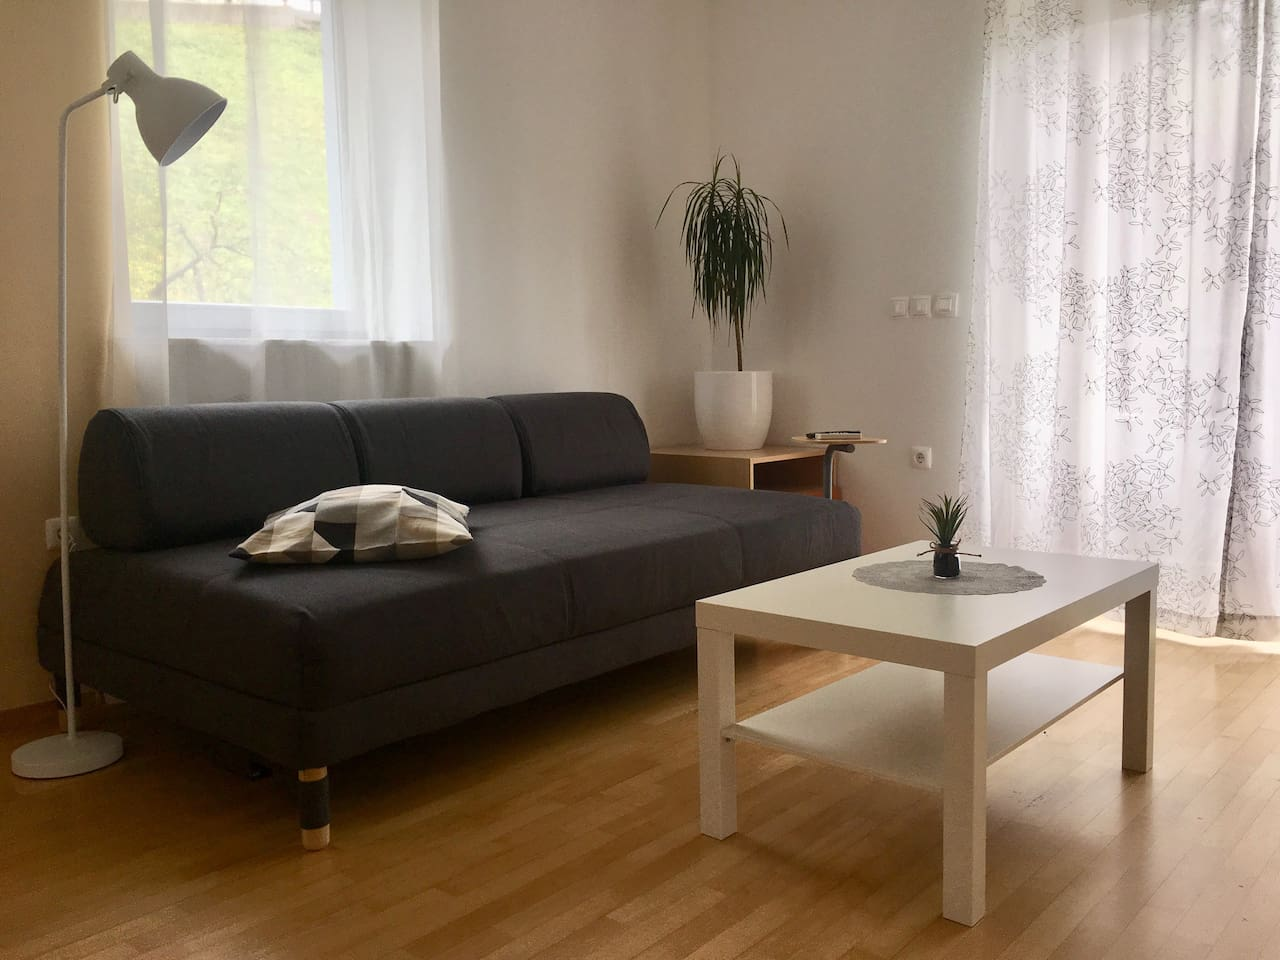 Spacious and cozy living area to relax after a day of exploring the sights :)